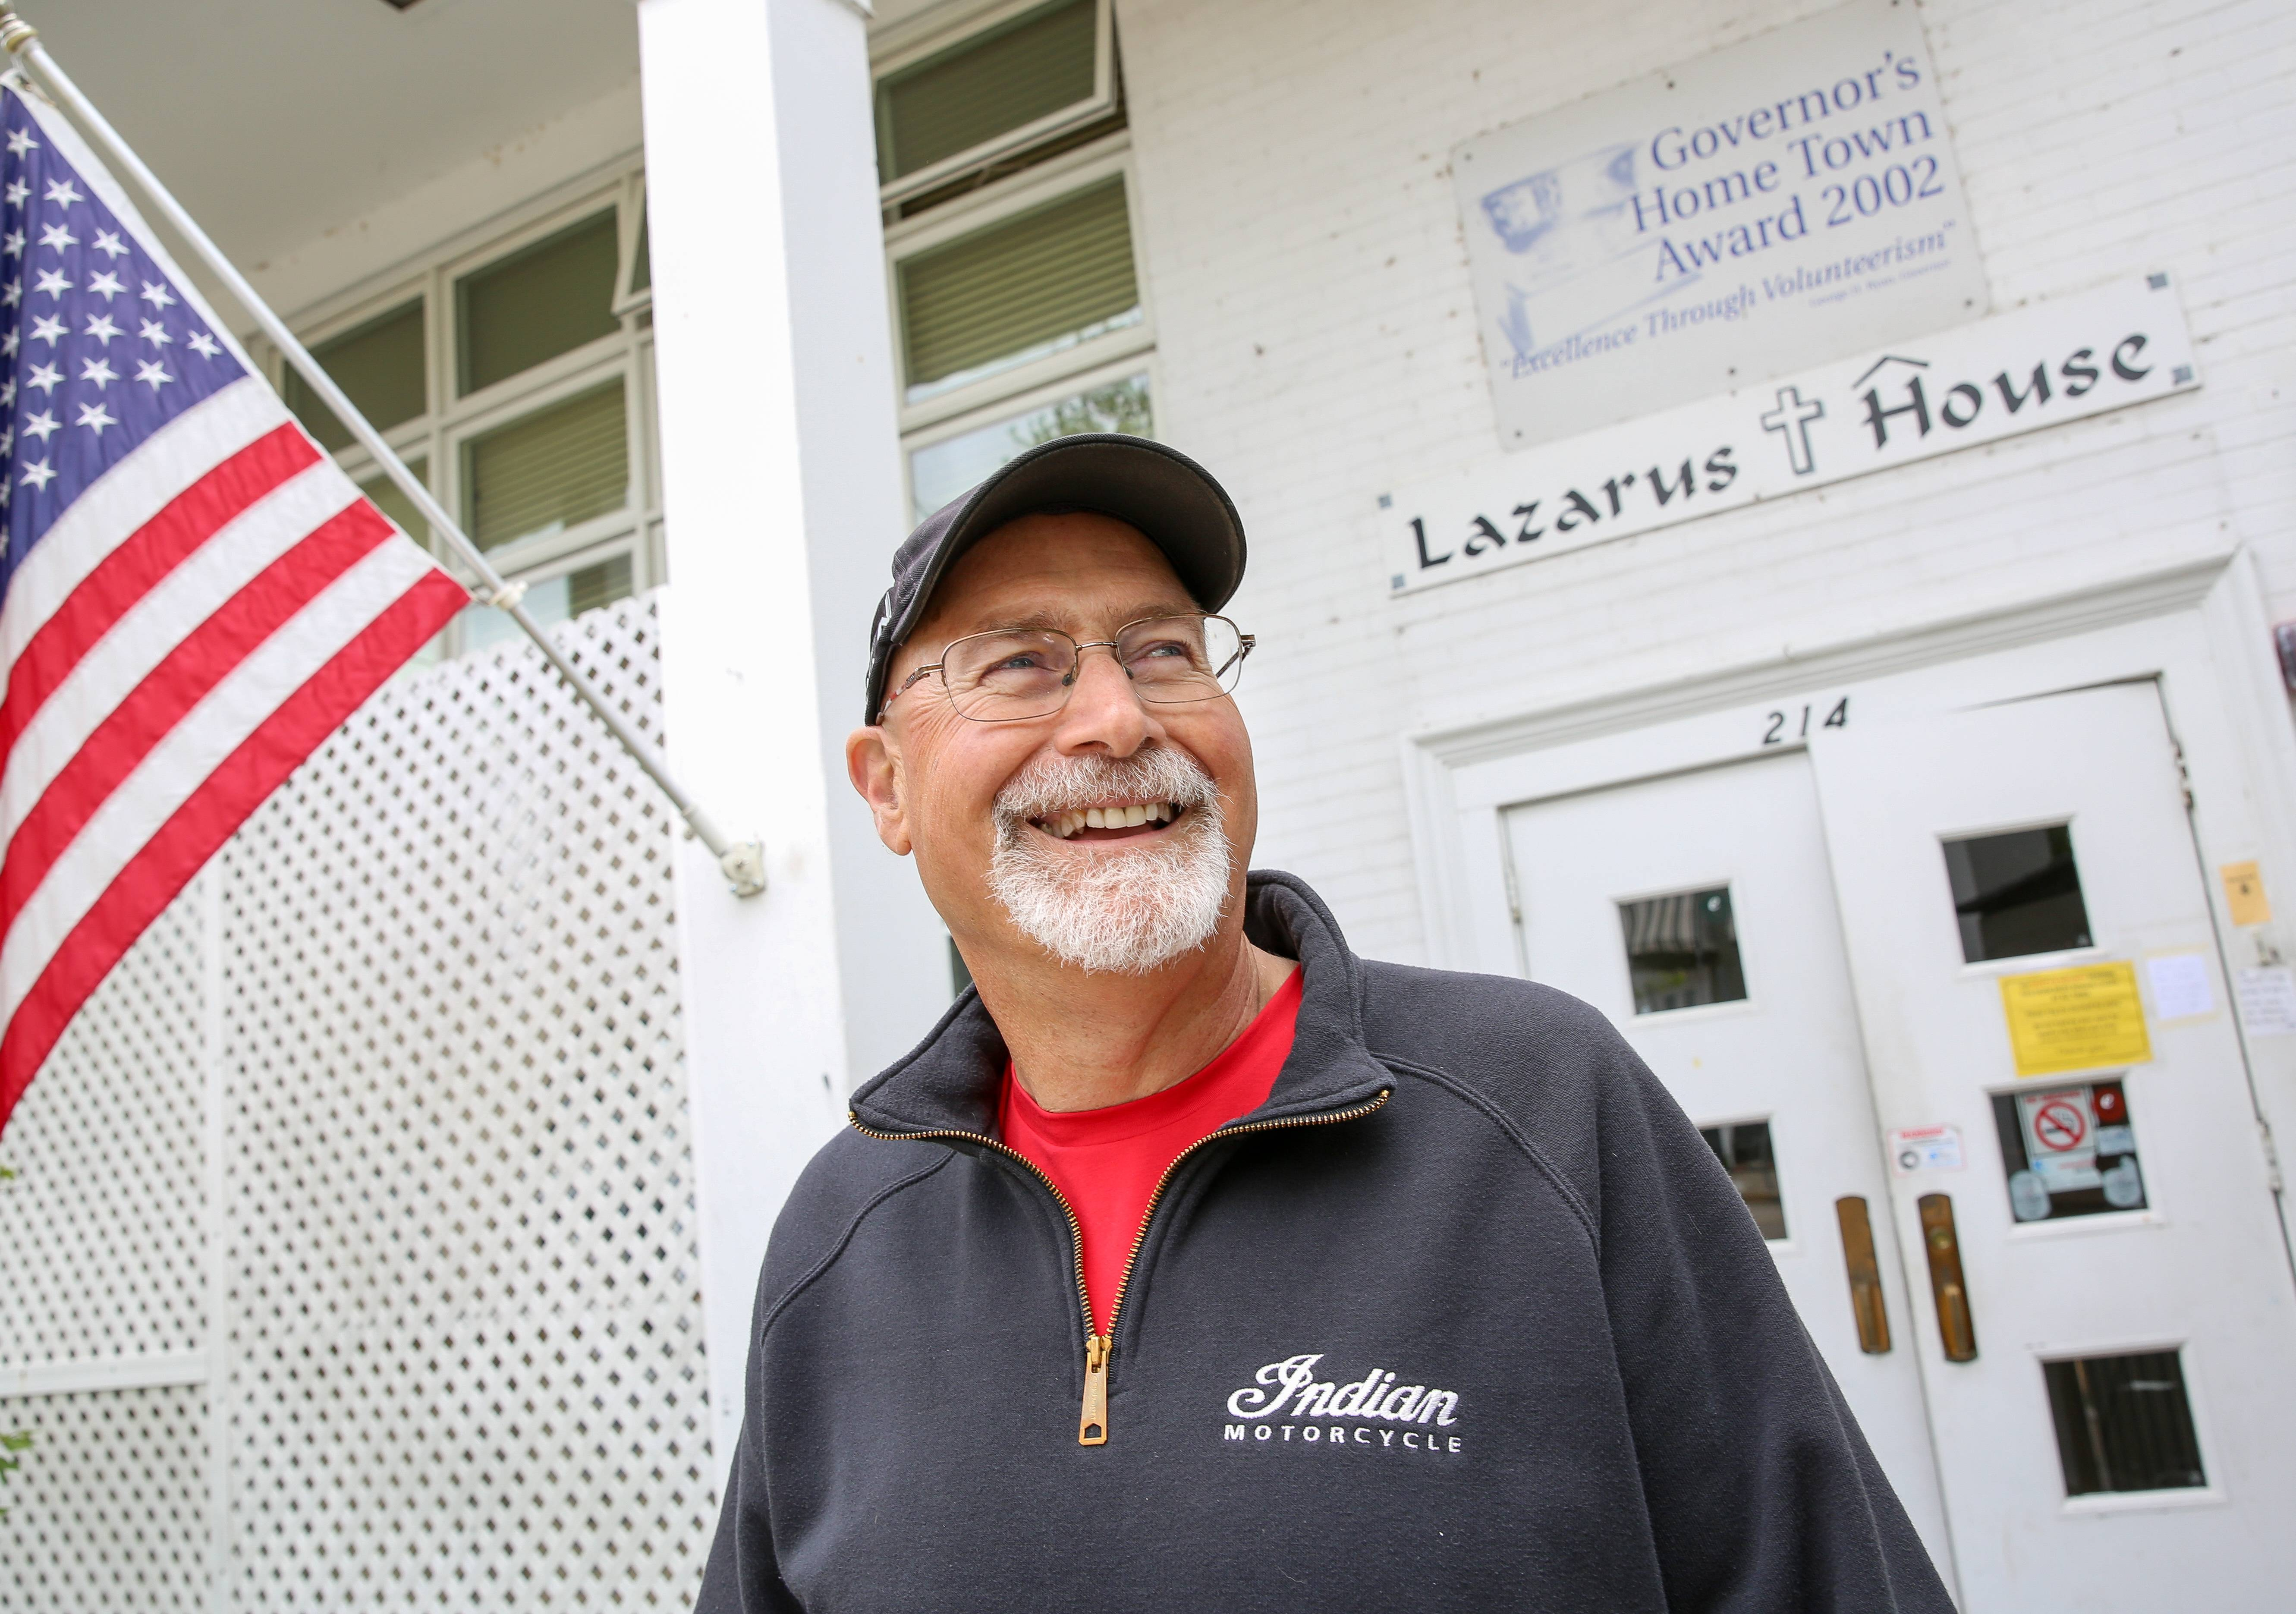 Jim Aikens is a volunteer at Lazarus House in St. Charles.